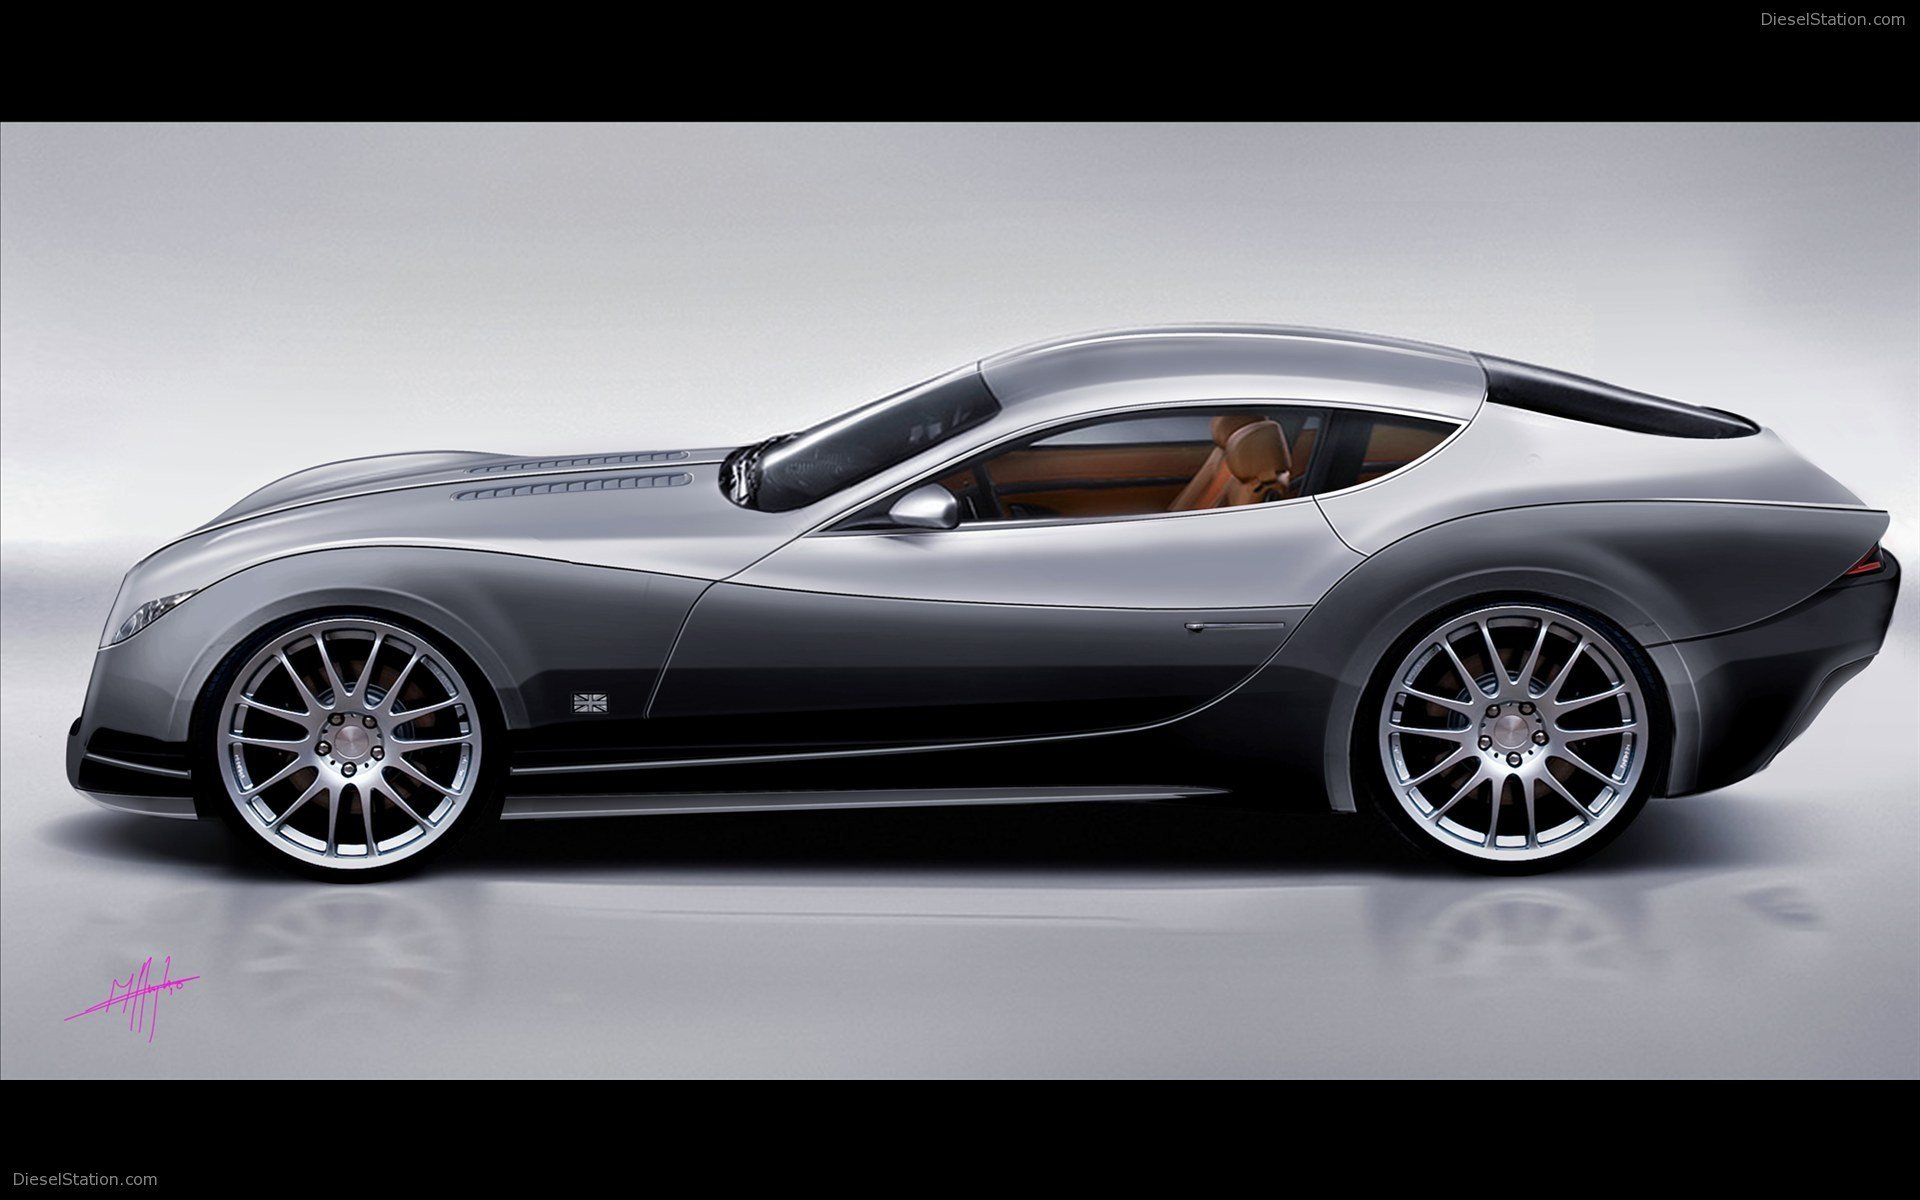 Latest Morgan Evagt Widescreen Exotic Car Wallpapers 02 Of 34 Free Download